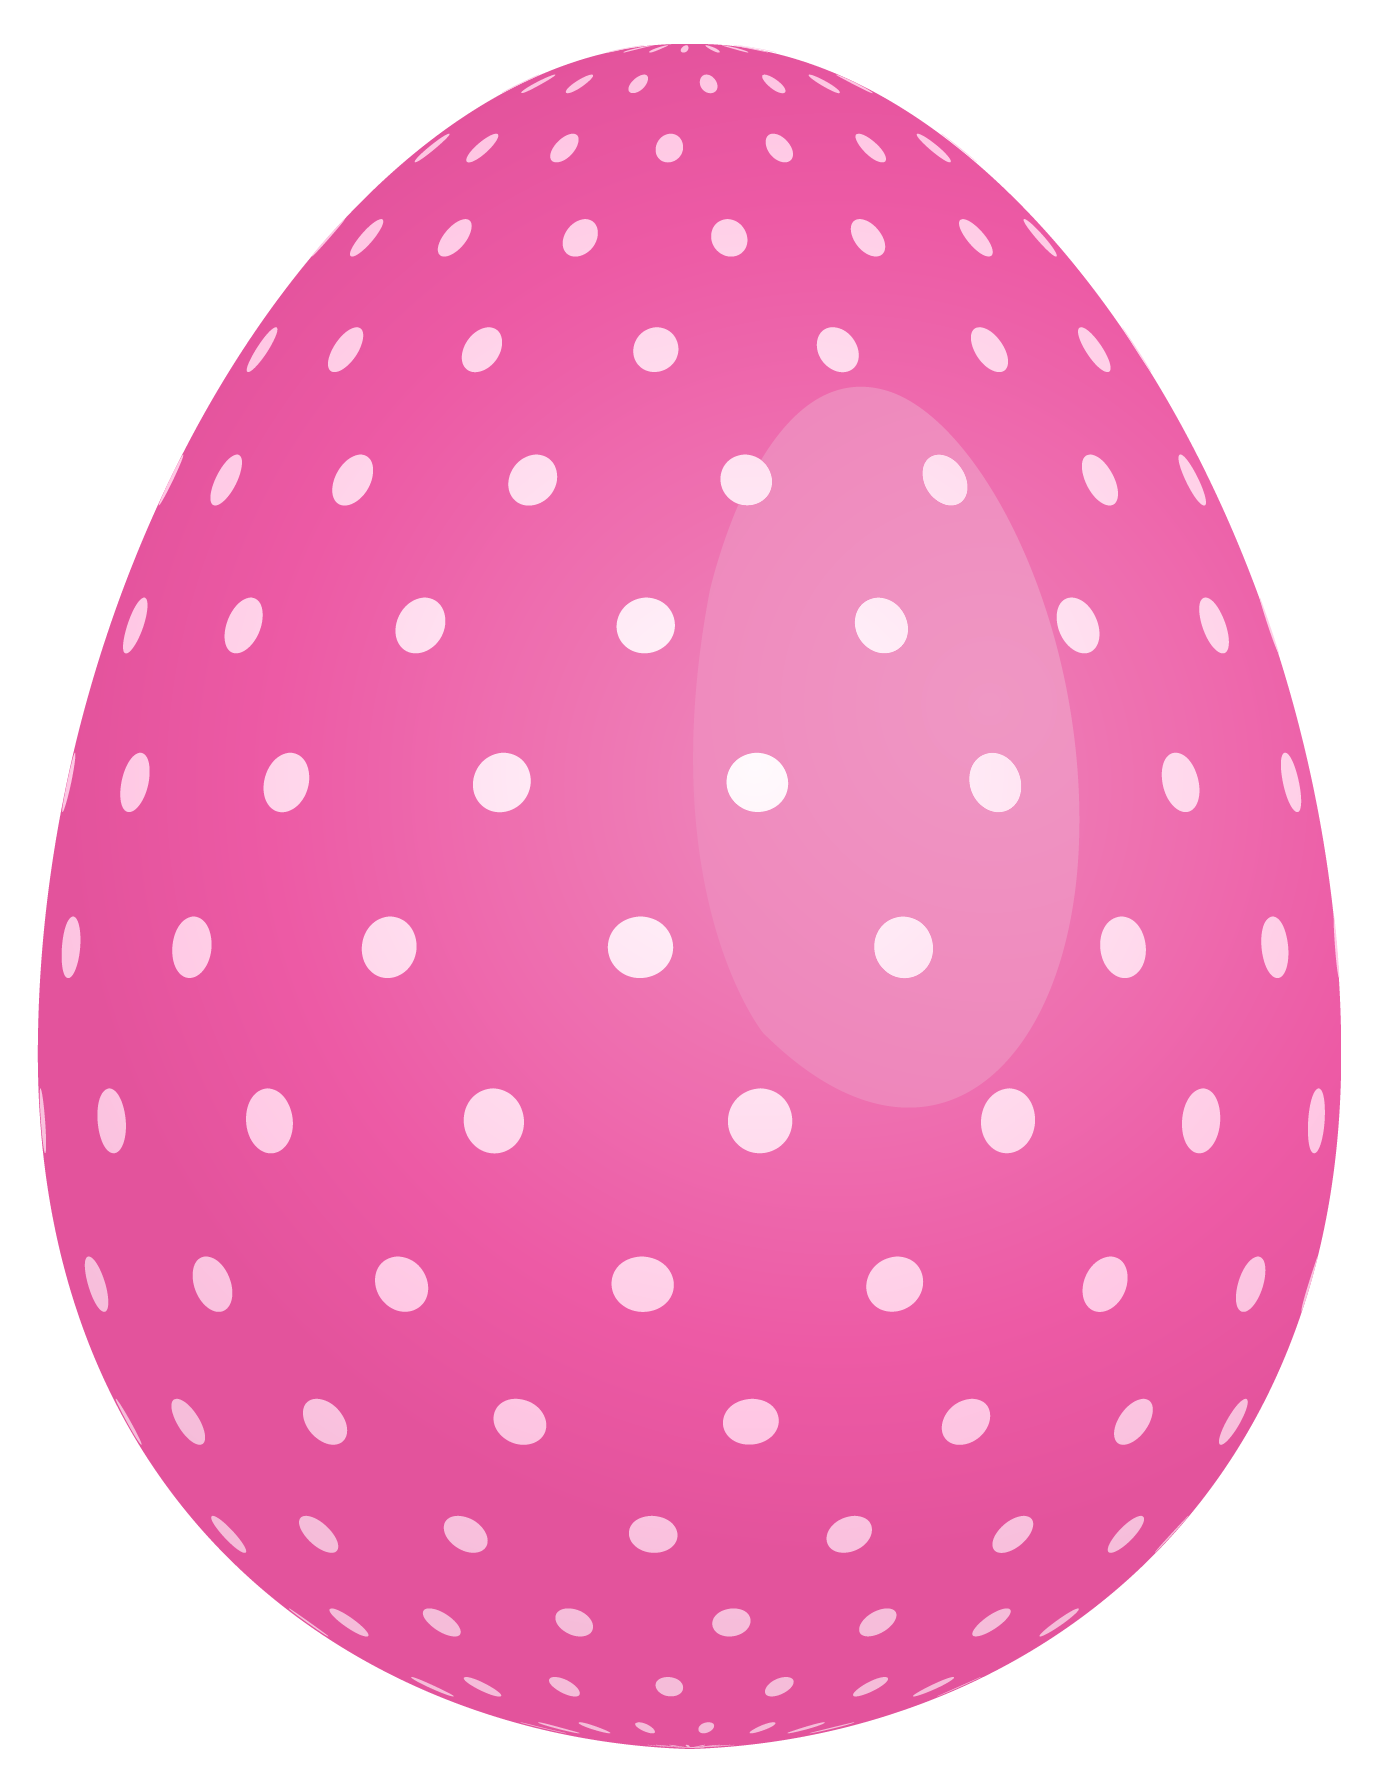 Easter Eggs Png - ClipArt Best